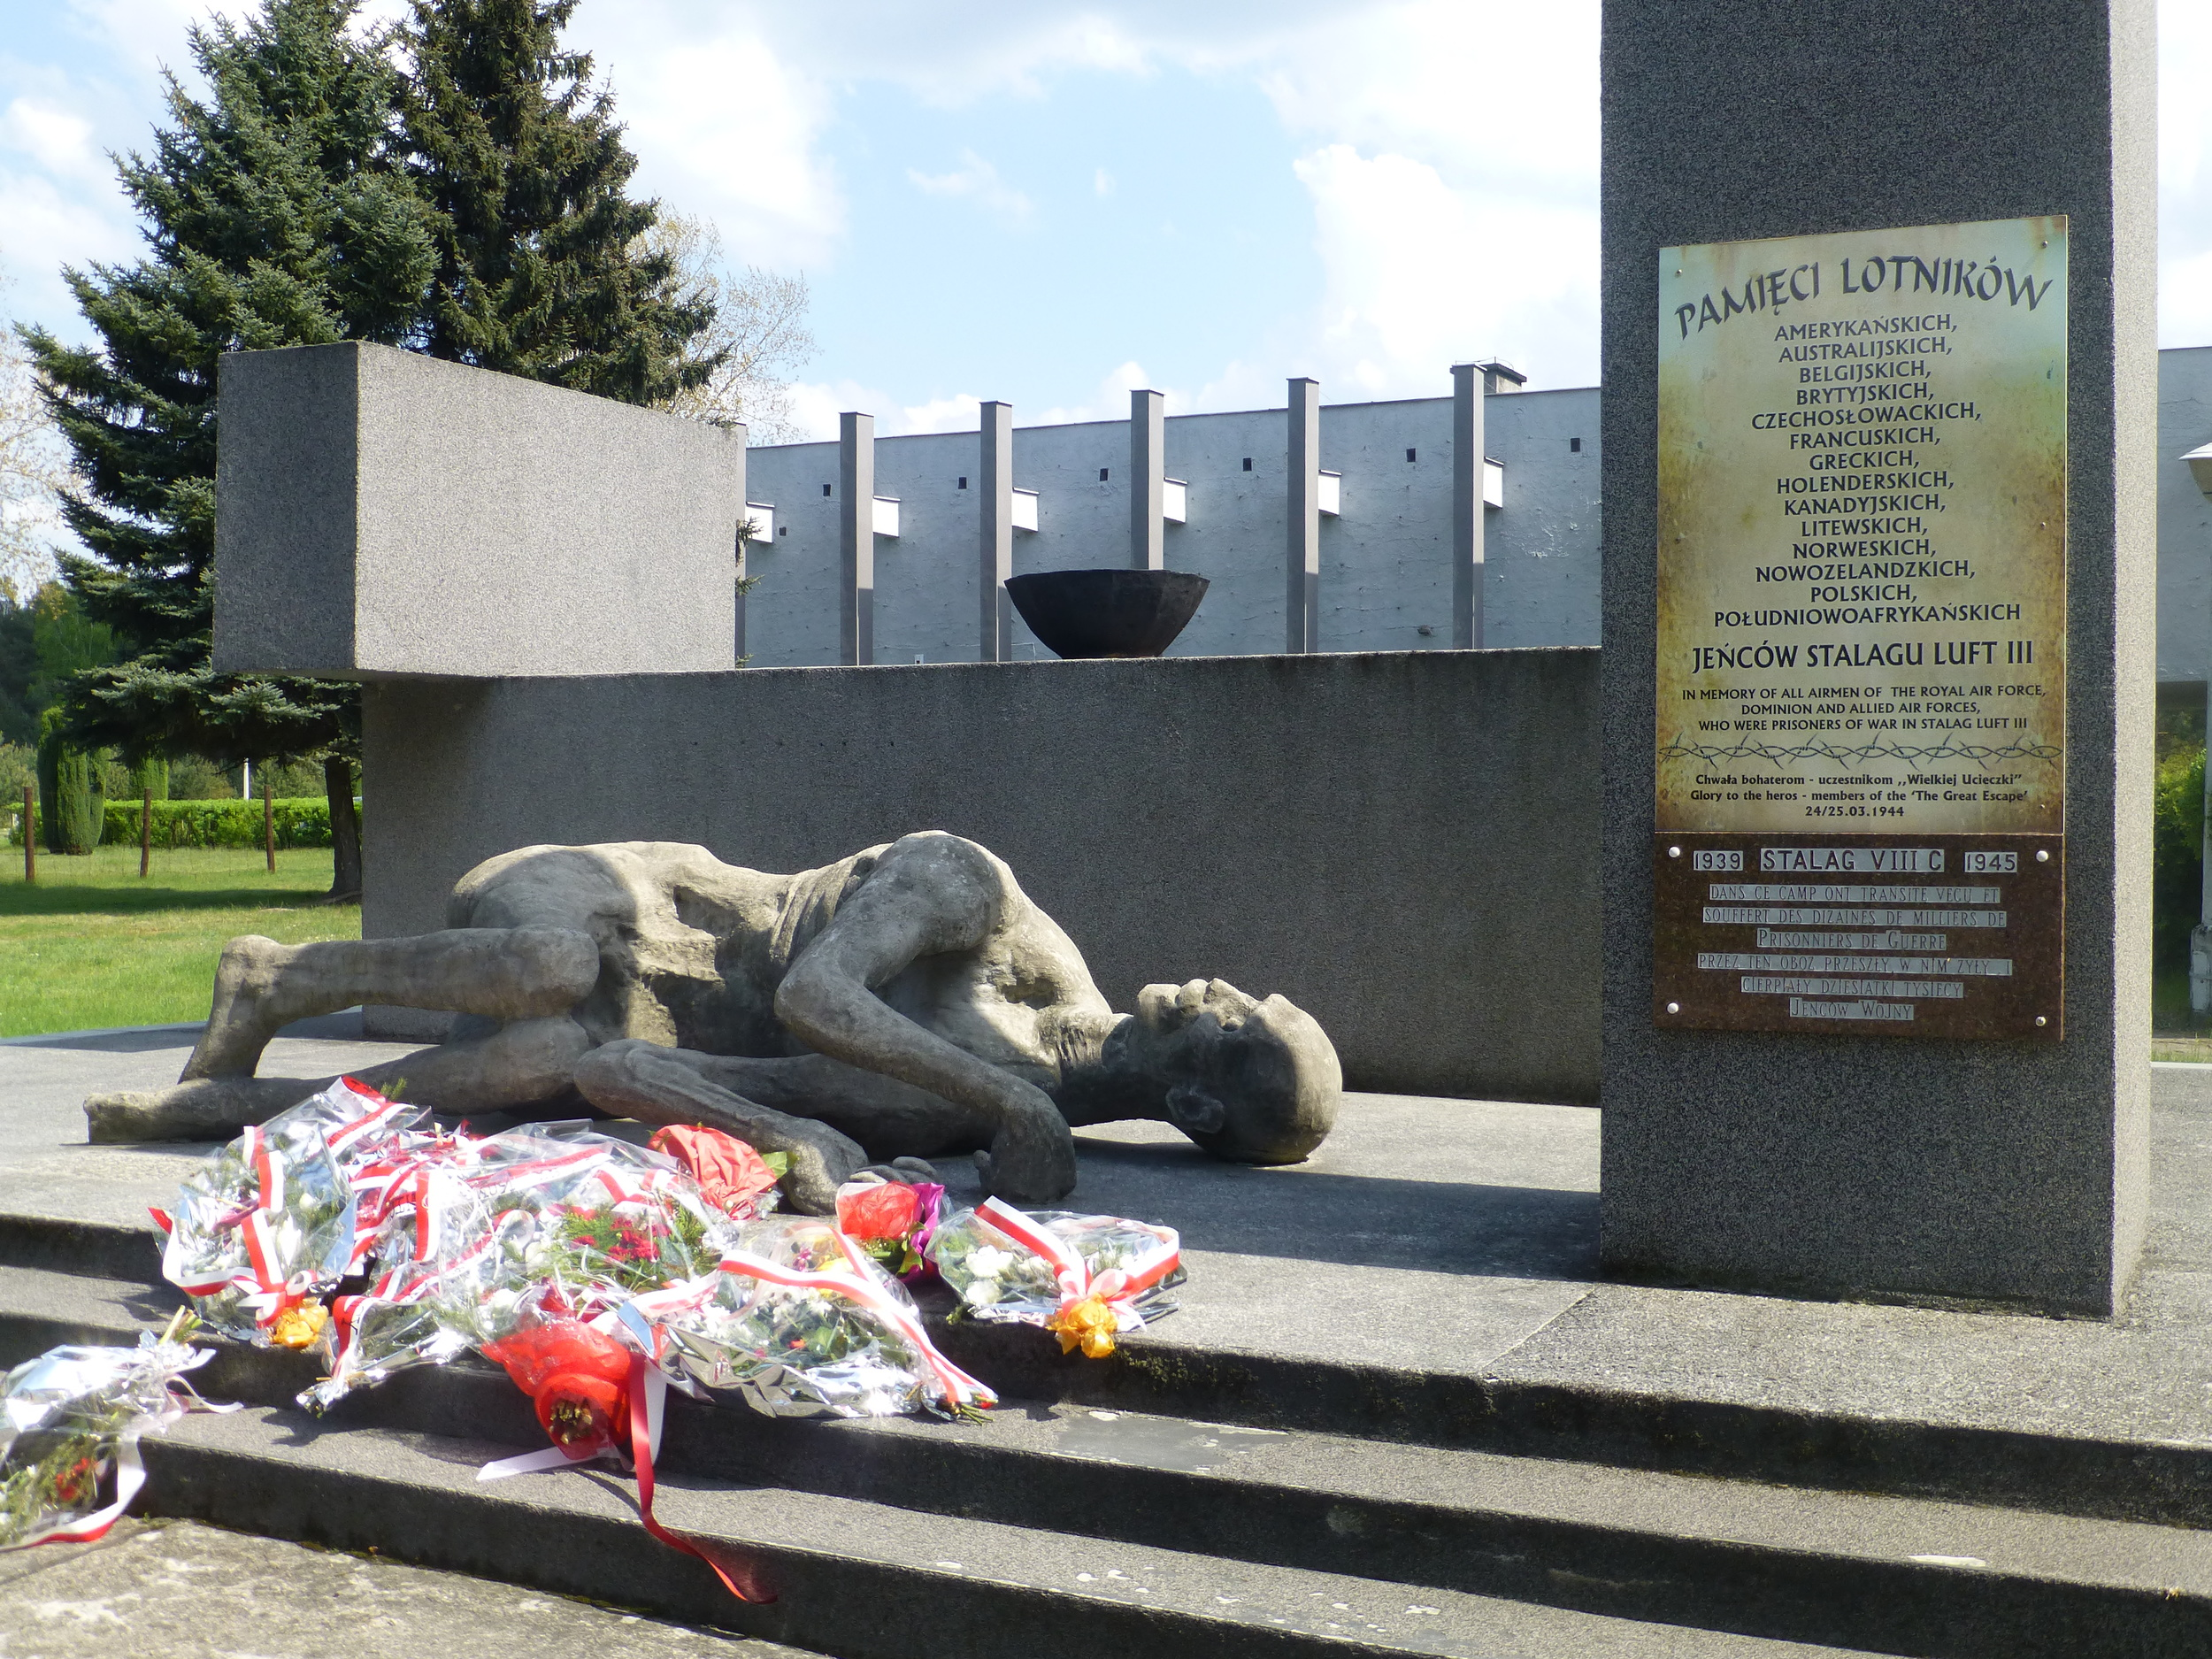 IT WAS VICTORY IN EUROPE DAY WHEN WE VISITED SO A MEMORIAL CEREMONY HAD TAKEN PLACE EARLIER THAT DAY